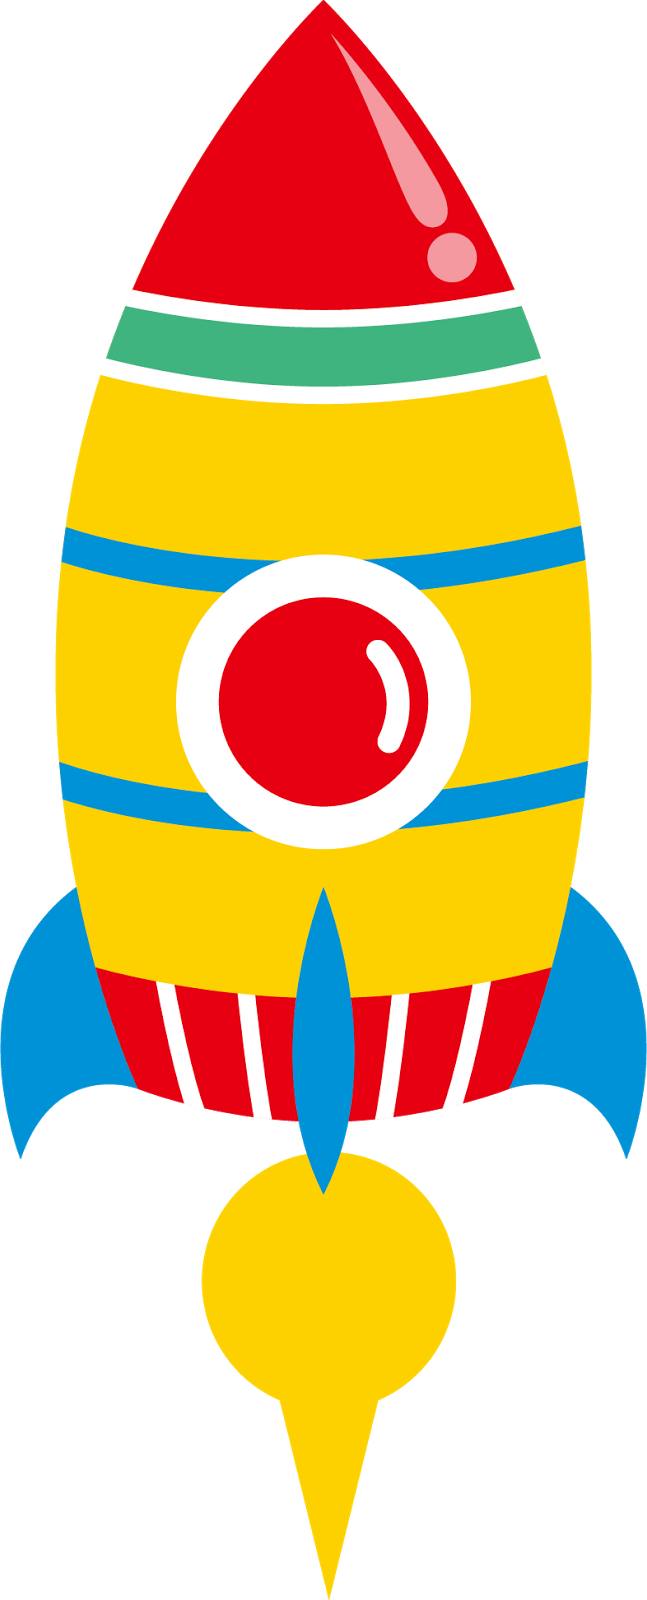 Spaceship clipart apollo spacecraft. Giggle and print aliens